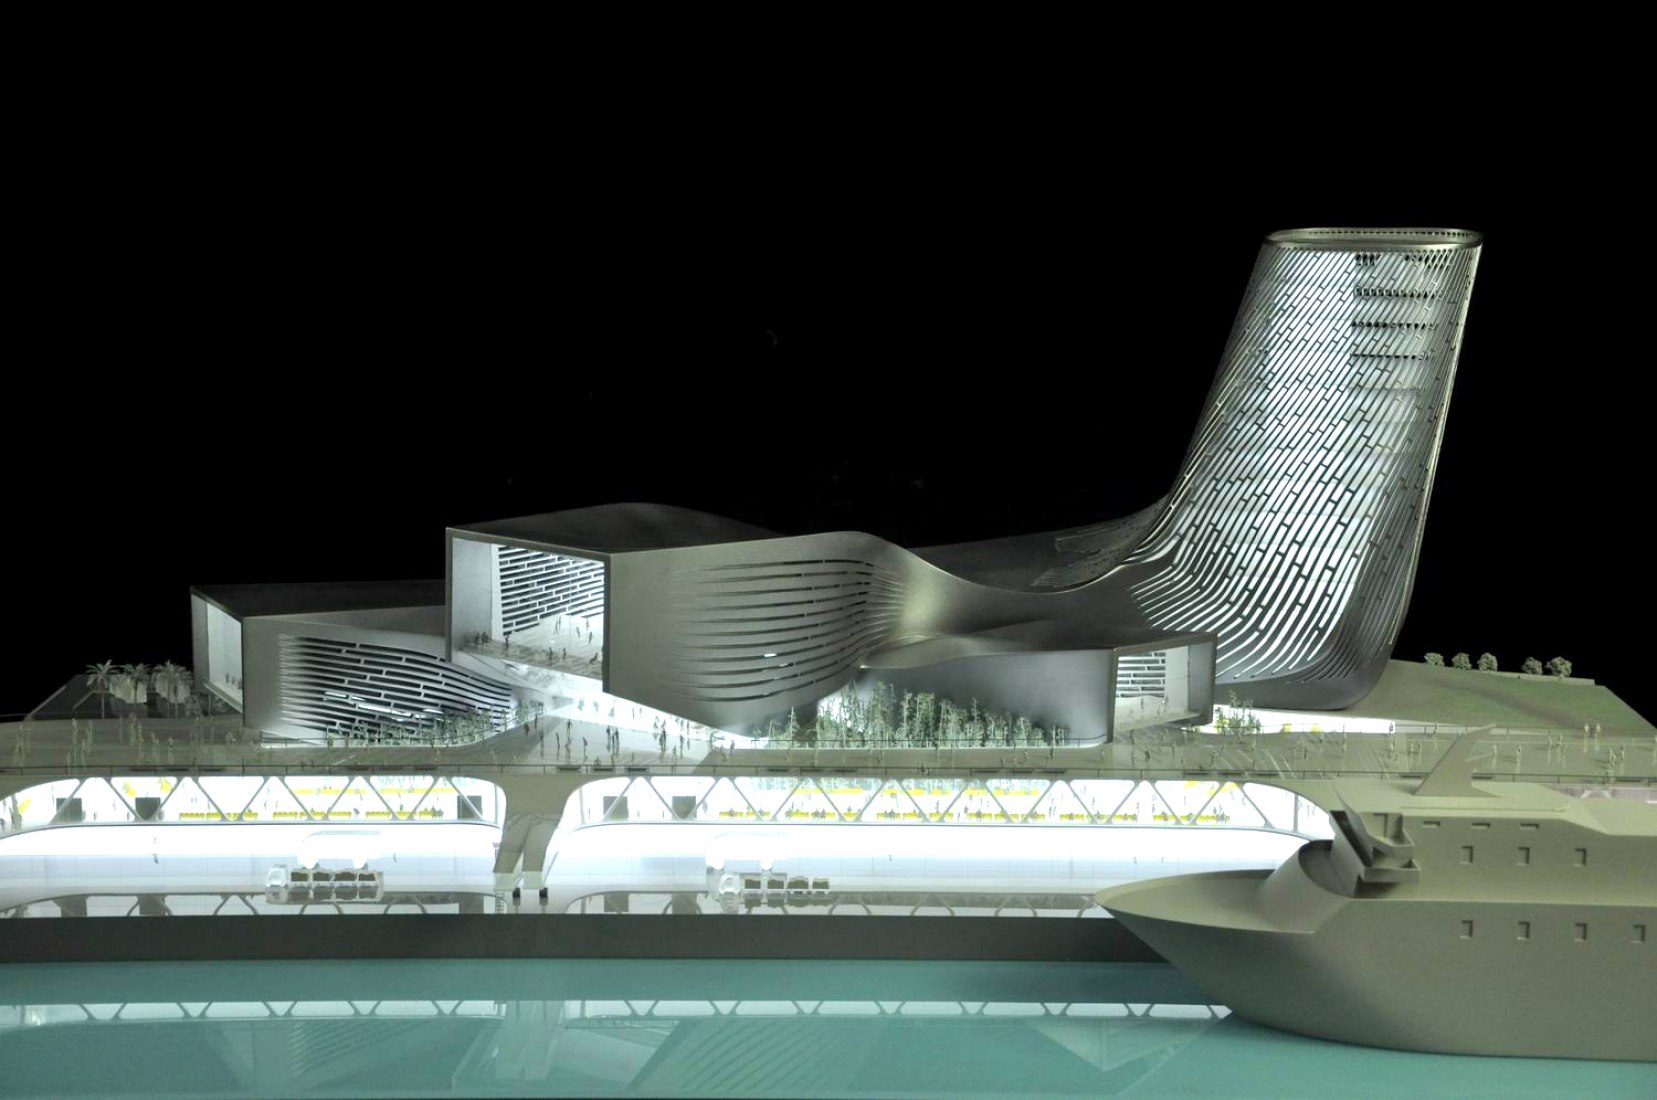 THE KAOHSIUNG PORT TERMINAL COMPETITION by REISER + UMEMOTO.